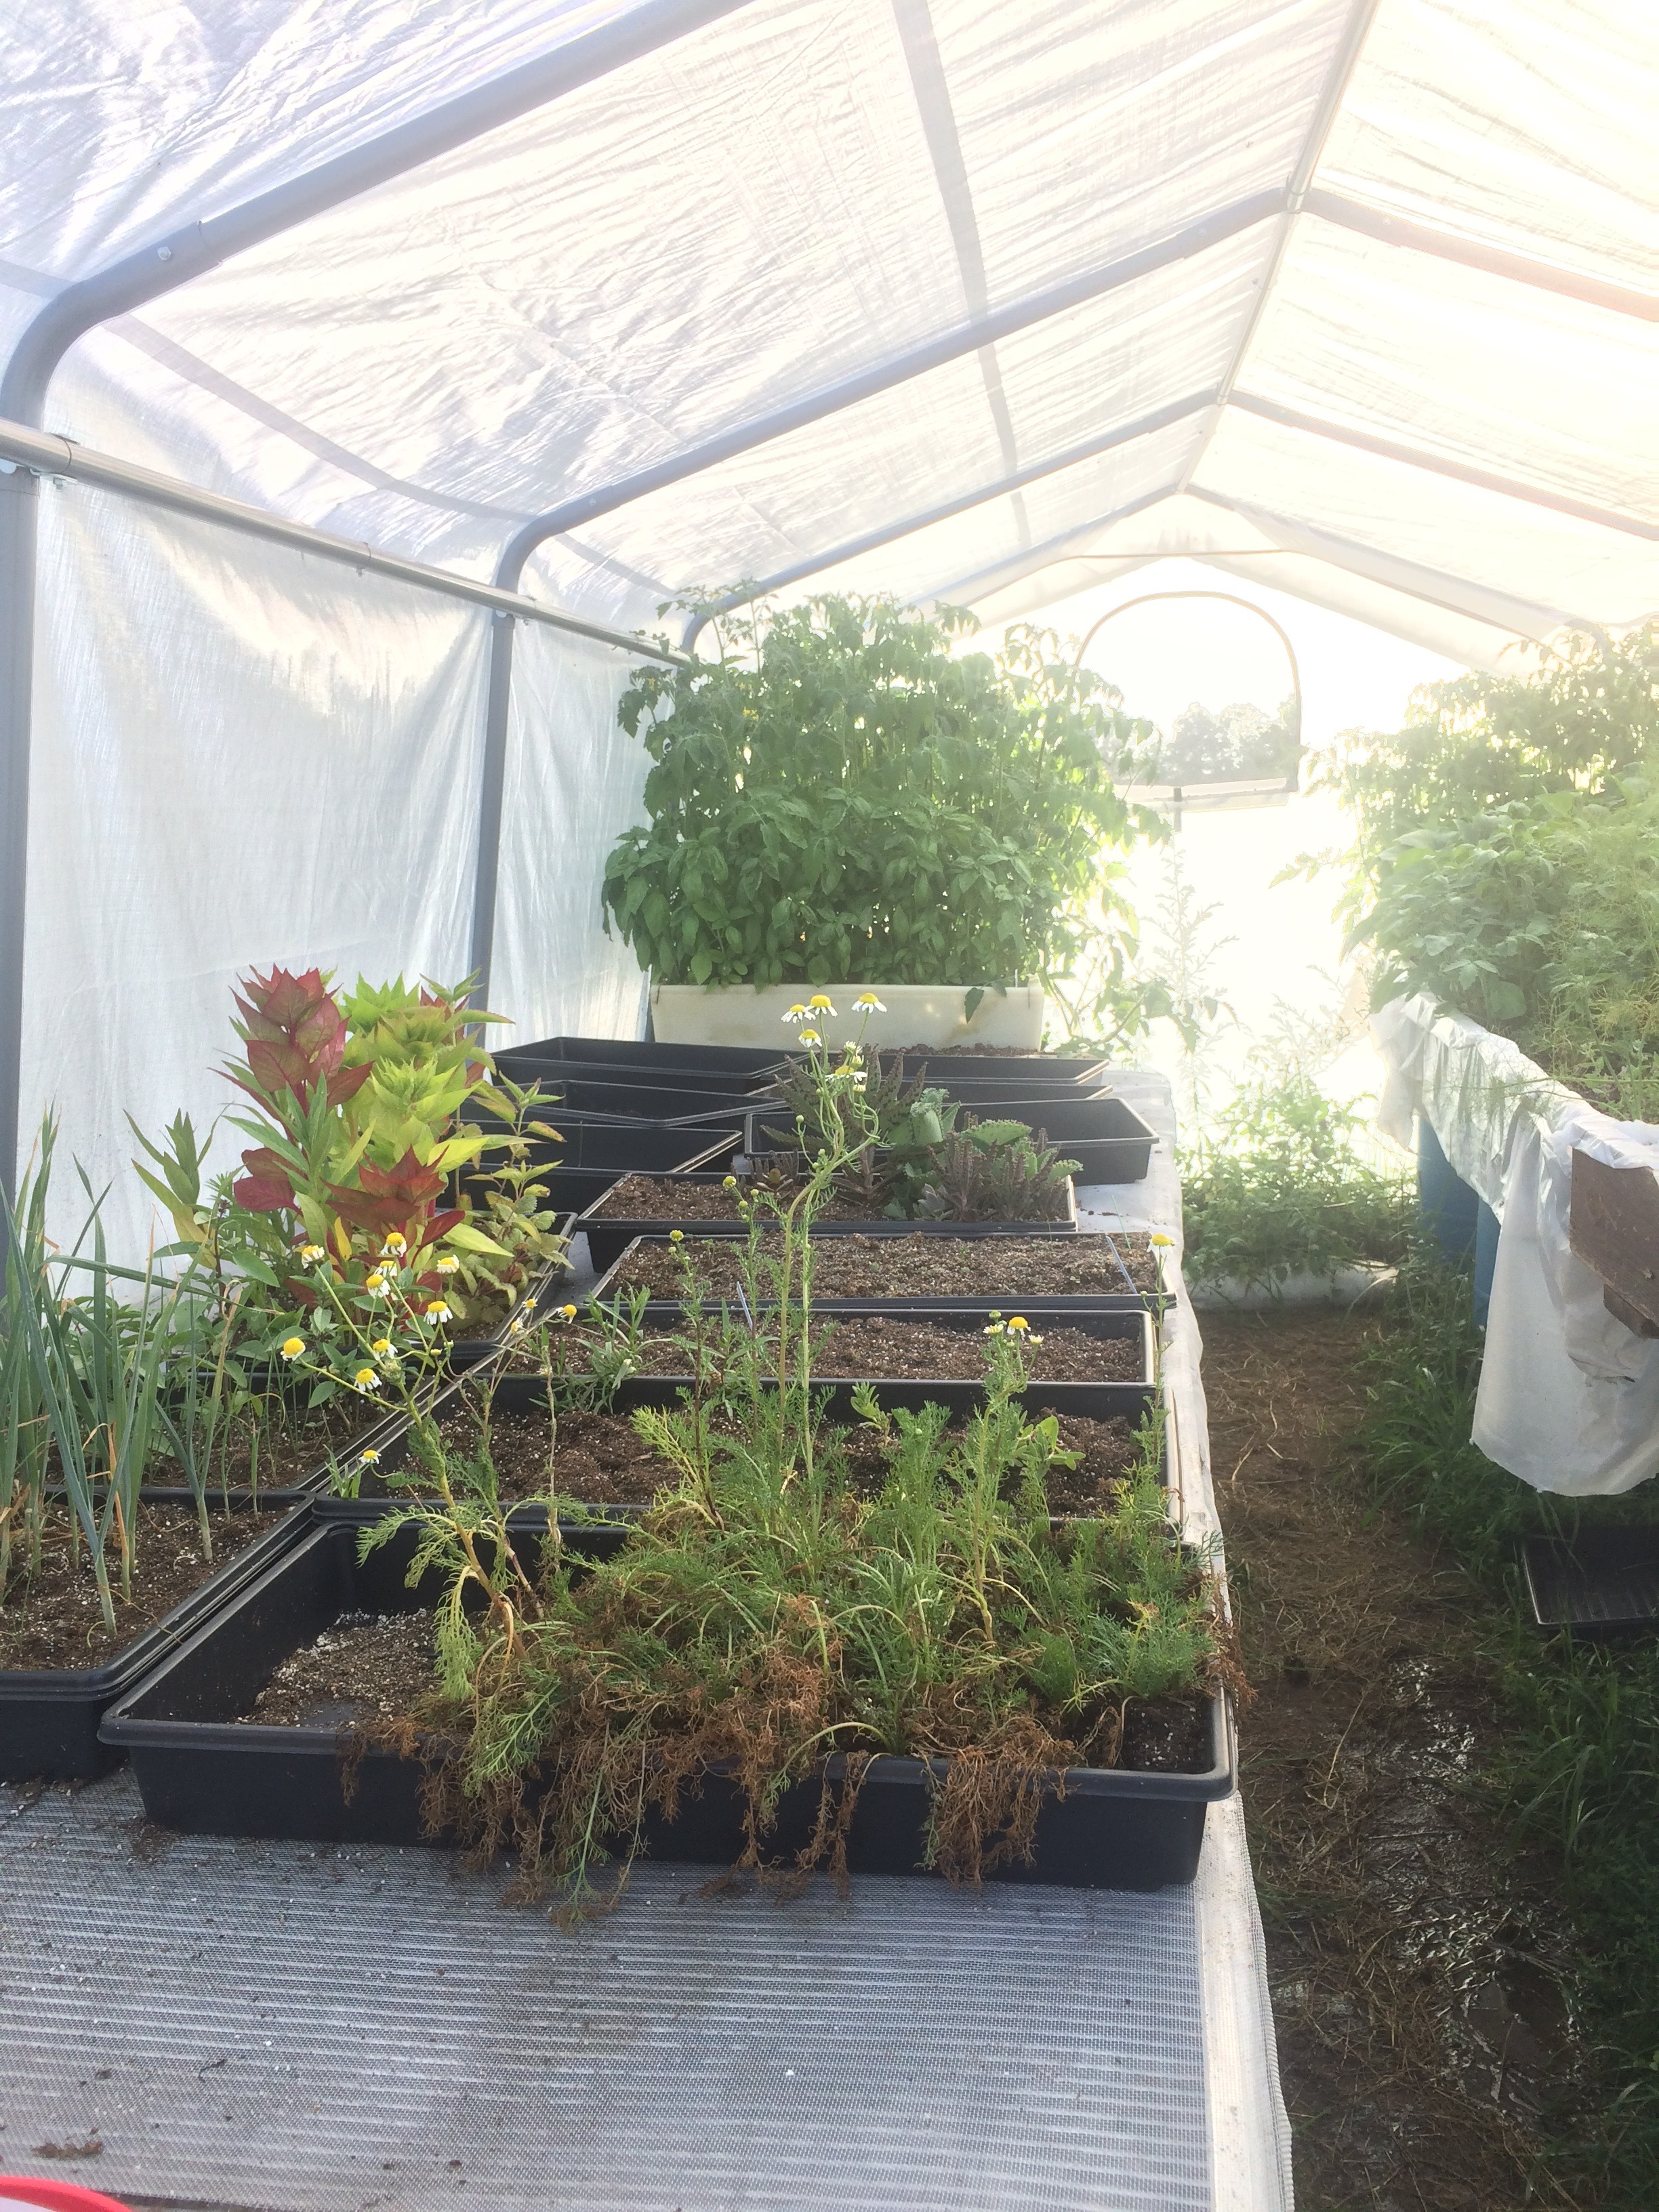 The greenhouse before we transplanted second planting of tomatoes, basil, peppers and tomatoes